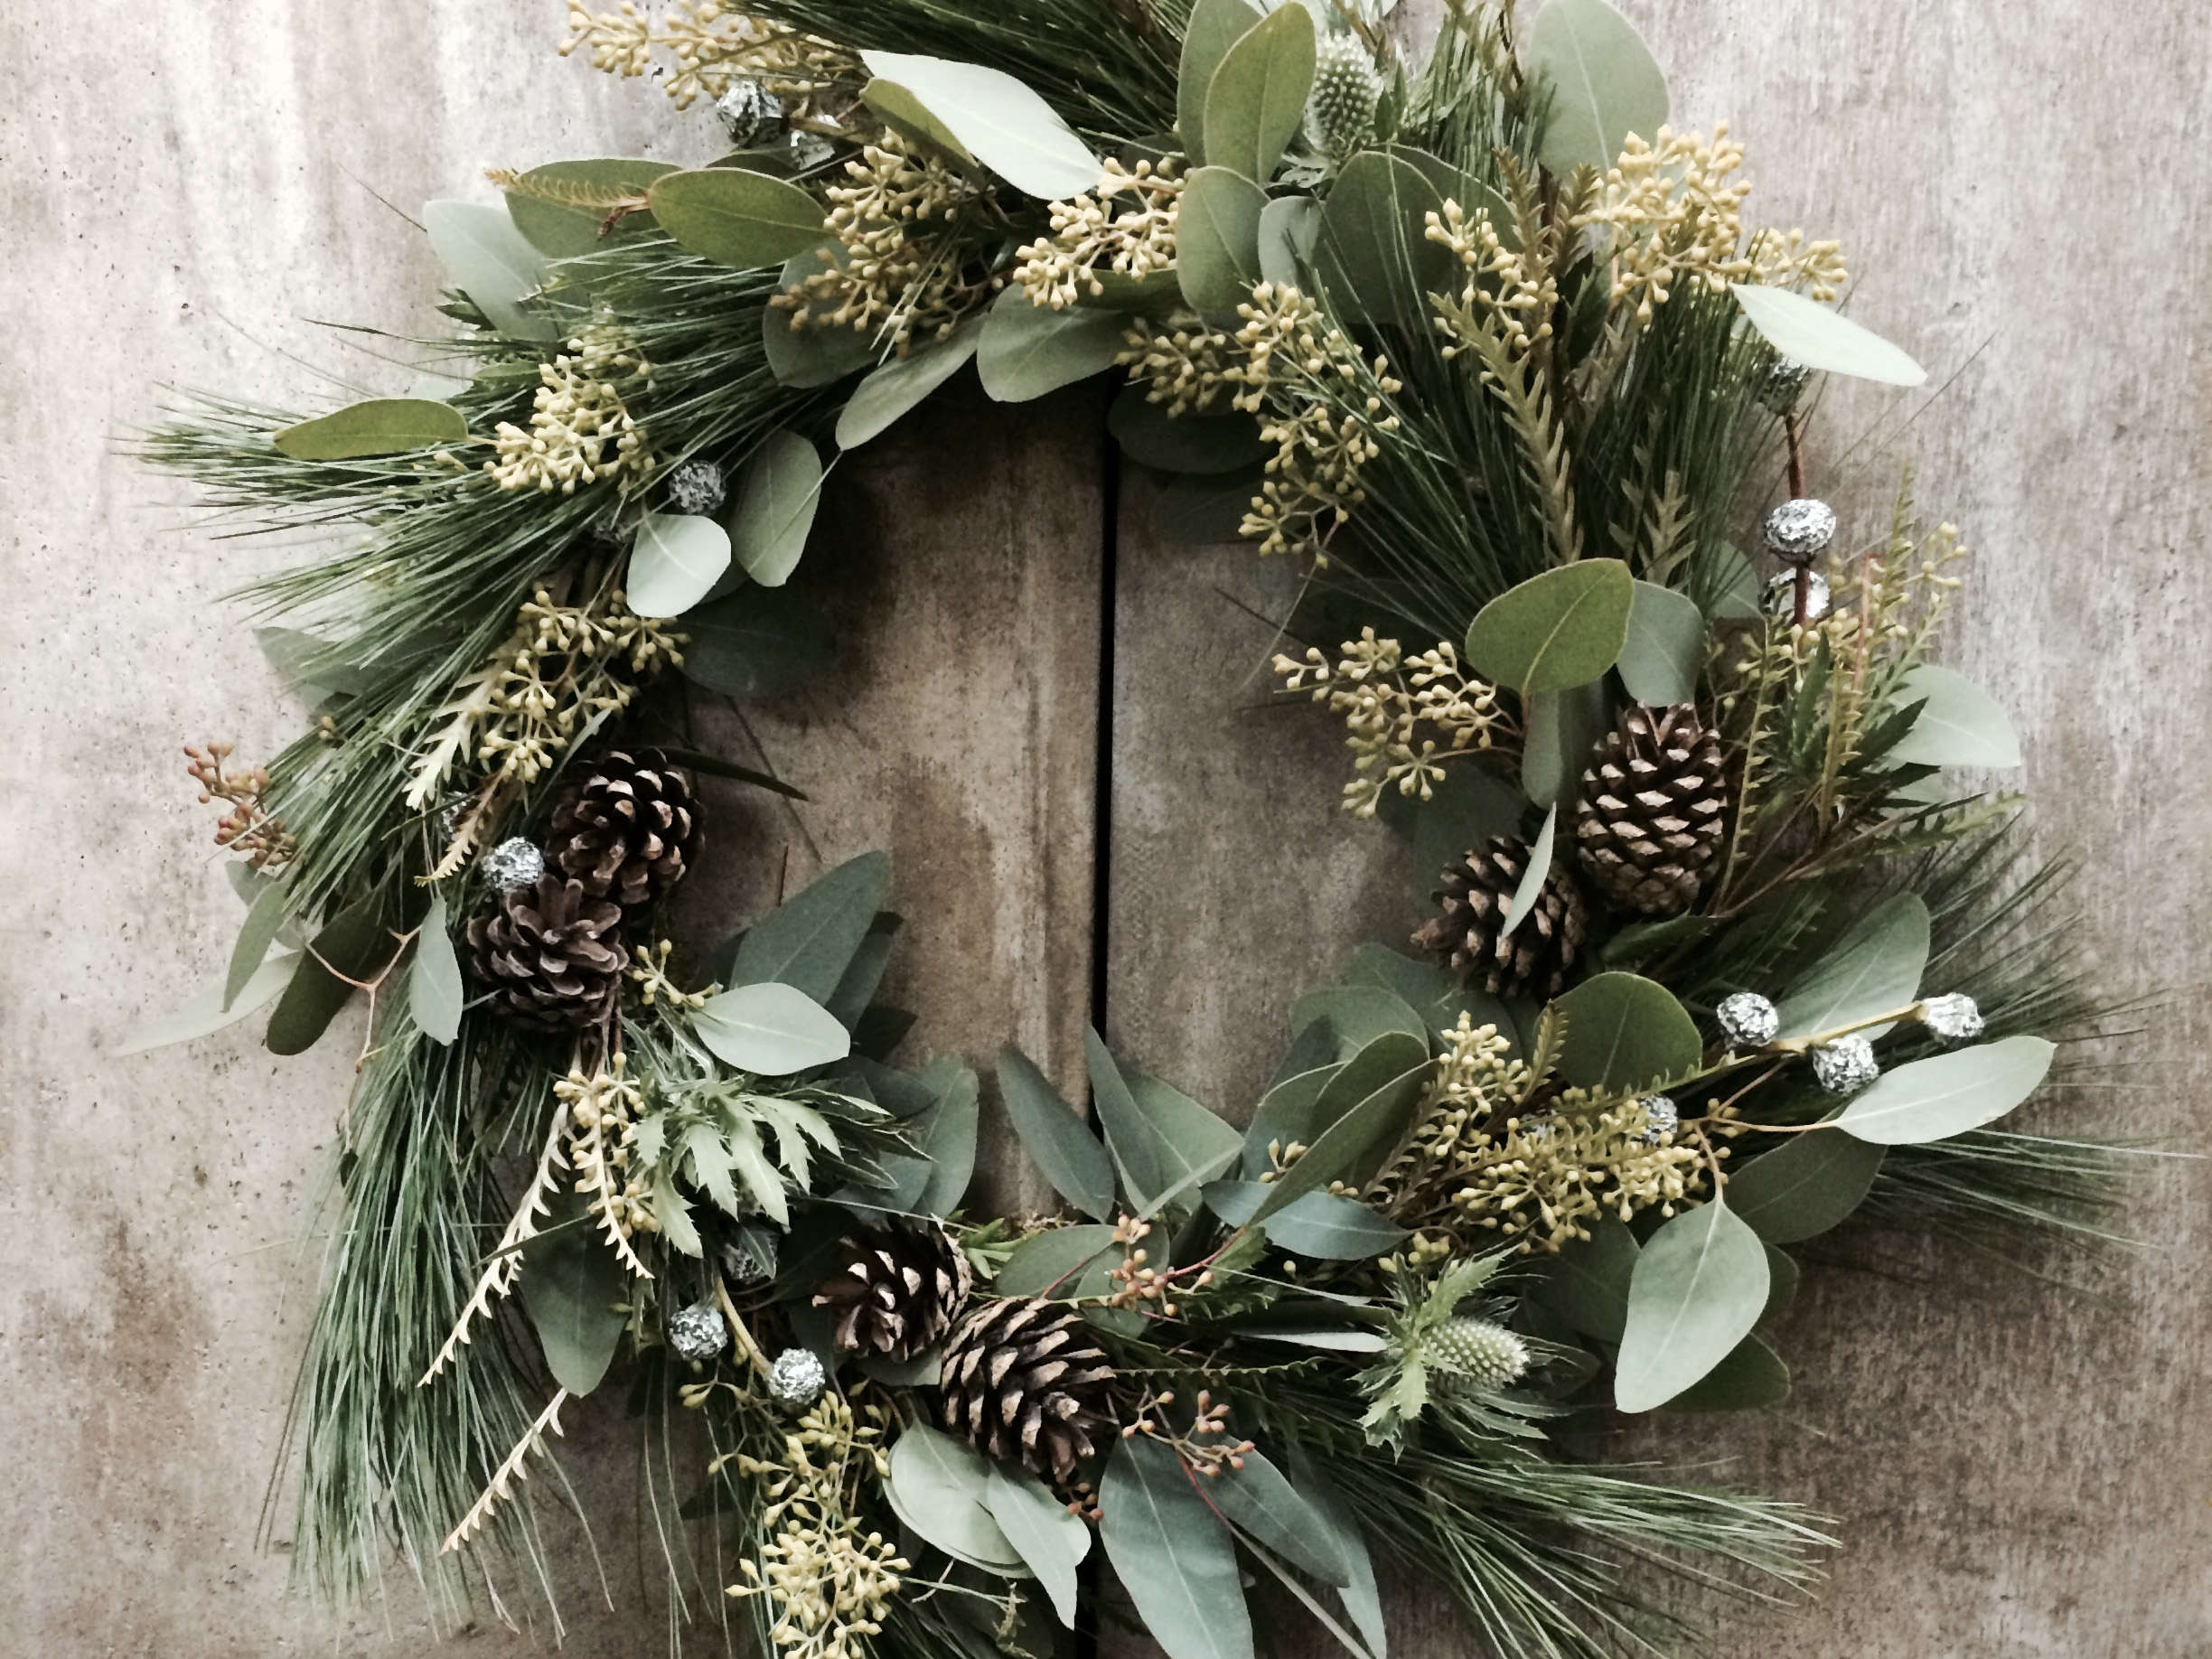 How to Make a Holiday Wreath {With Real Greenery!}  Holiday Wreath, DIY Holiday, Porch Decor, DIY Holiday Wreath, Christmas, Christmas Decor, Holiday Home #Christmas #Holiday #DIYHoliday